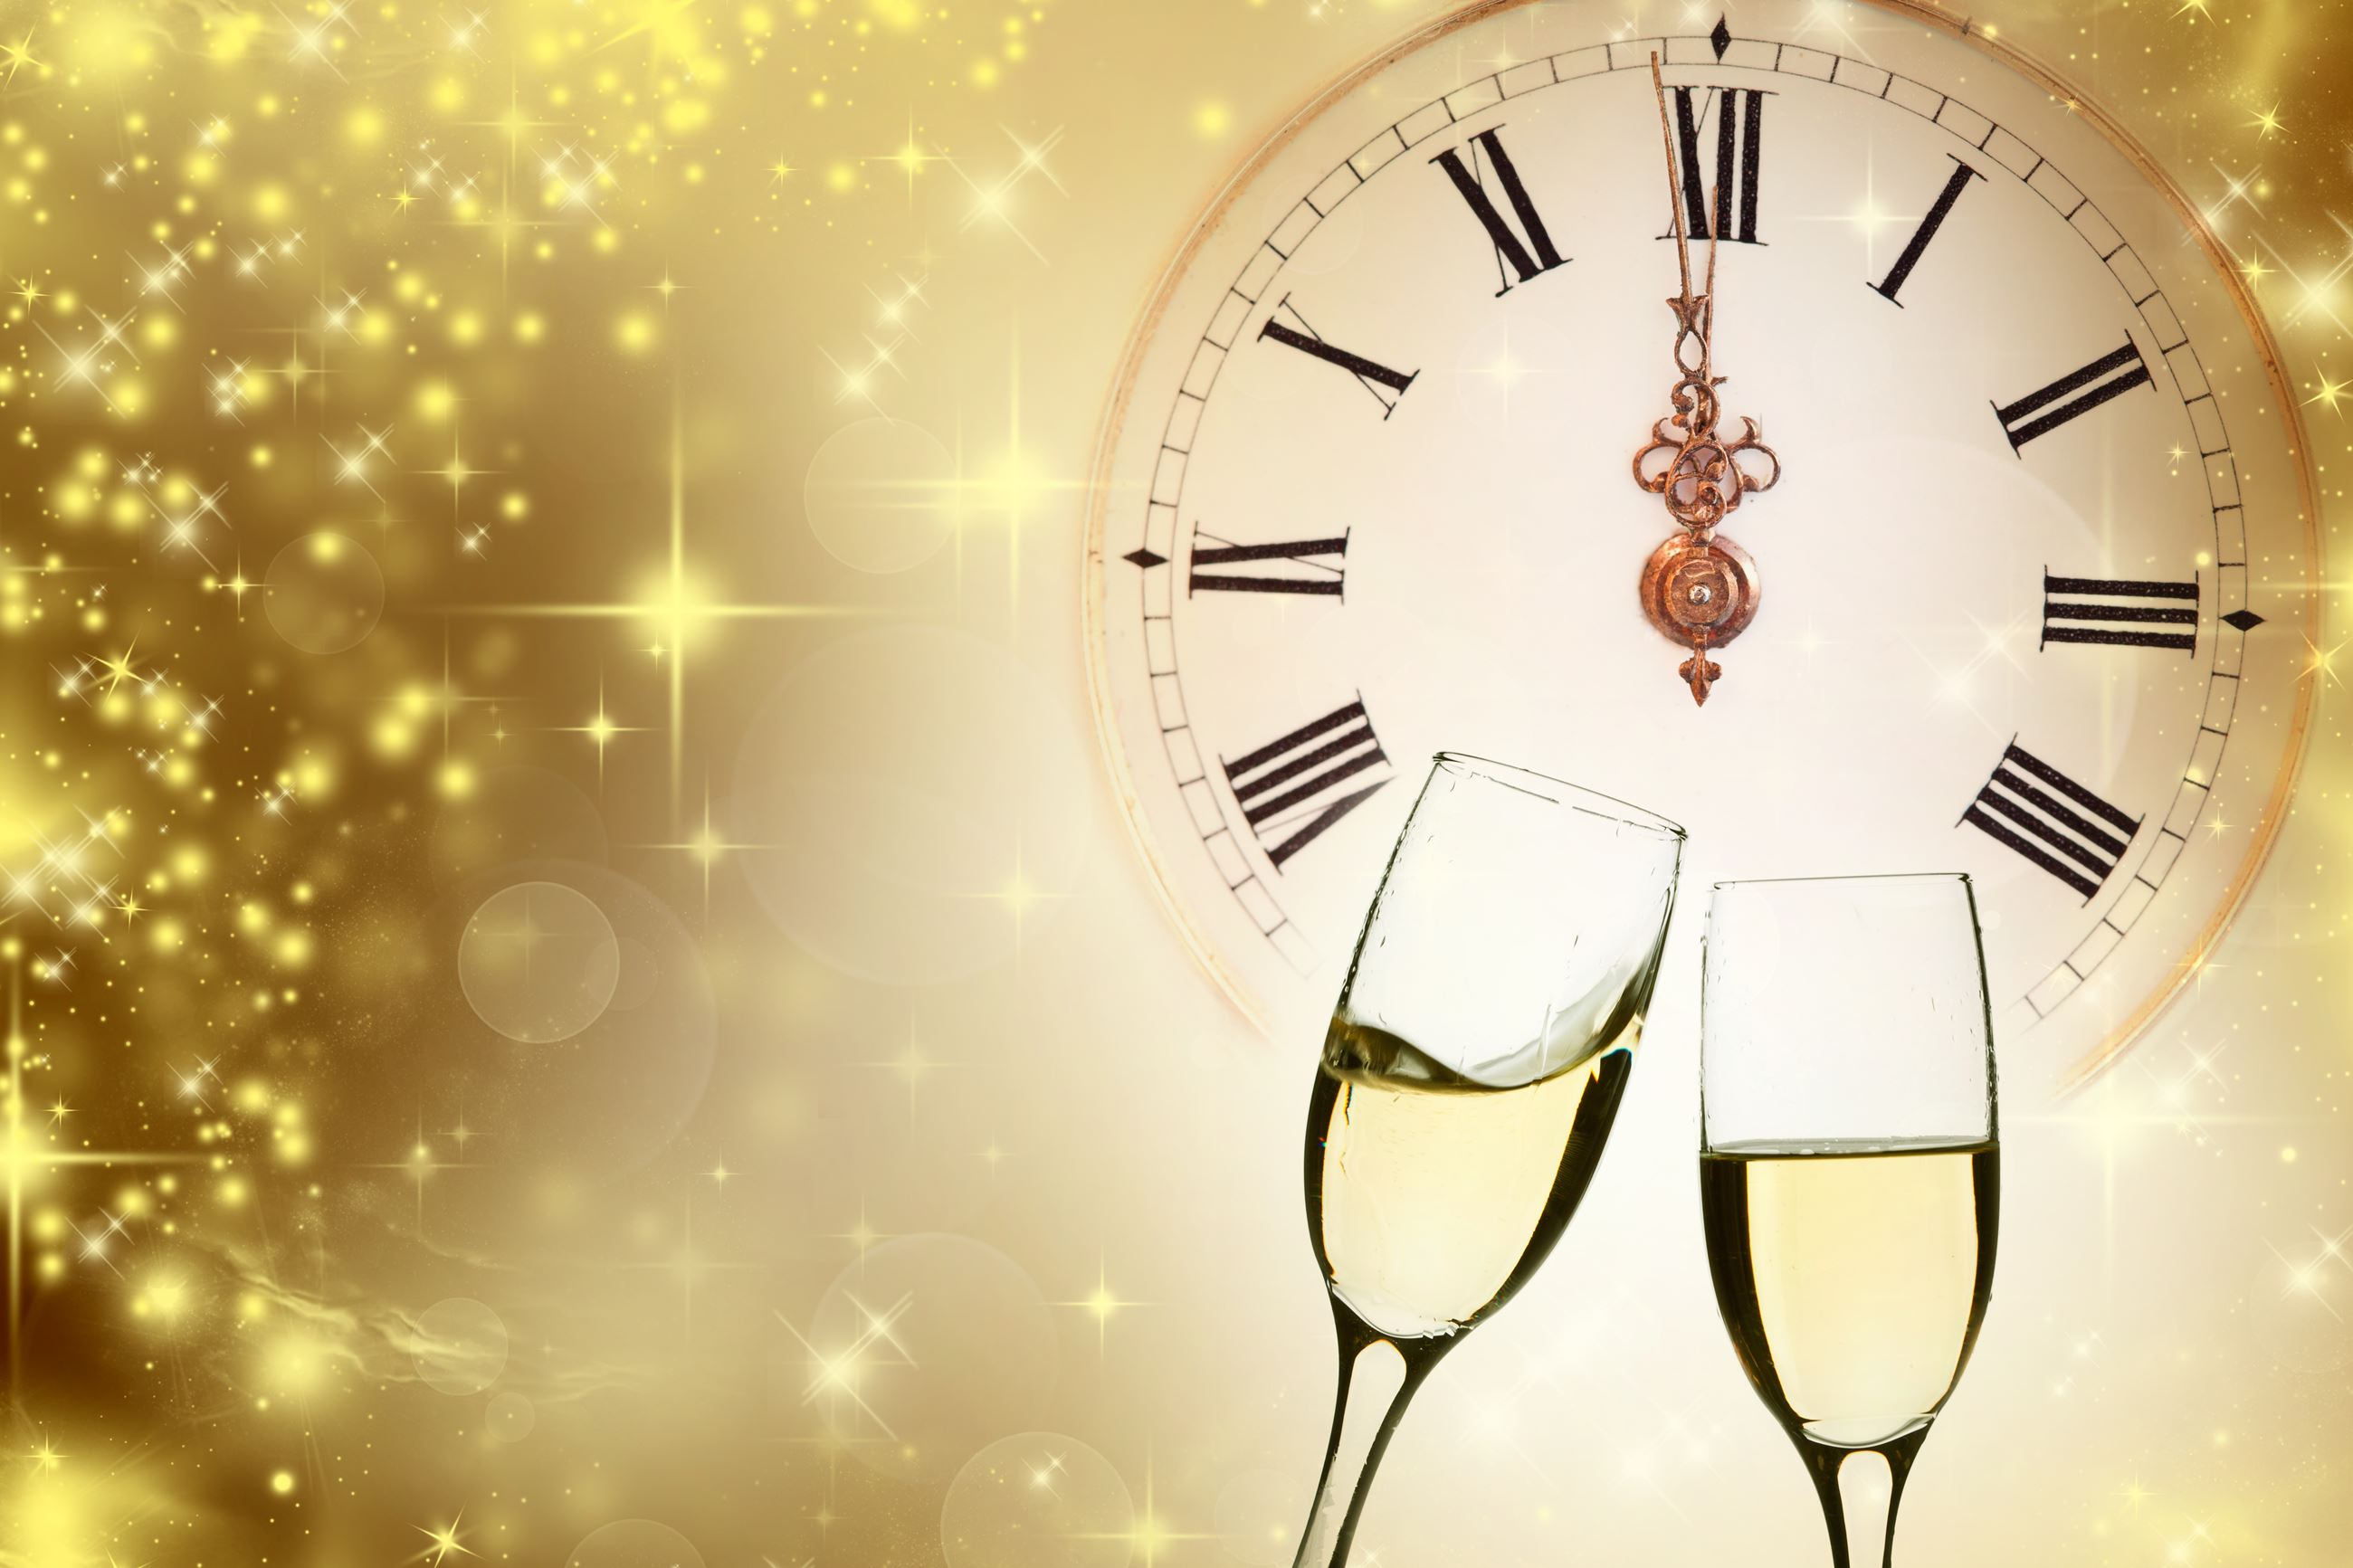 Find information about the New Year's Eve Party